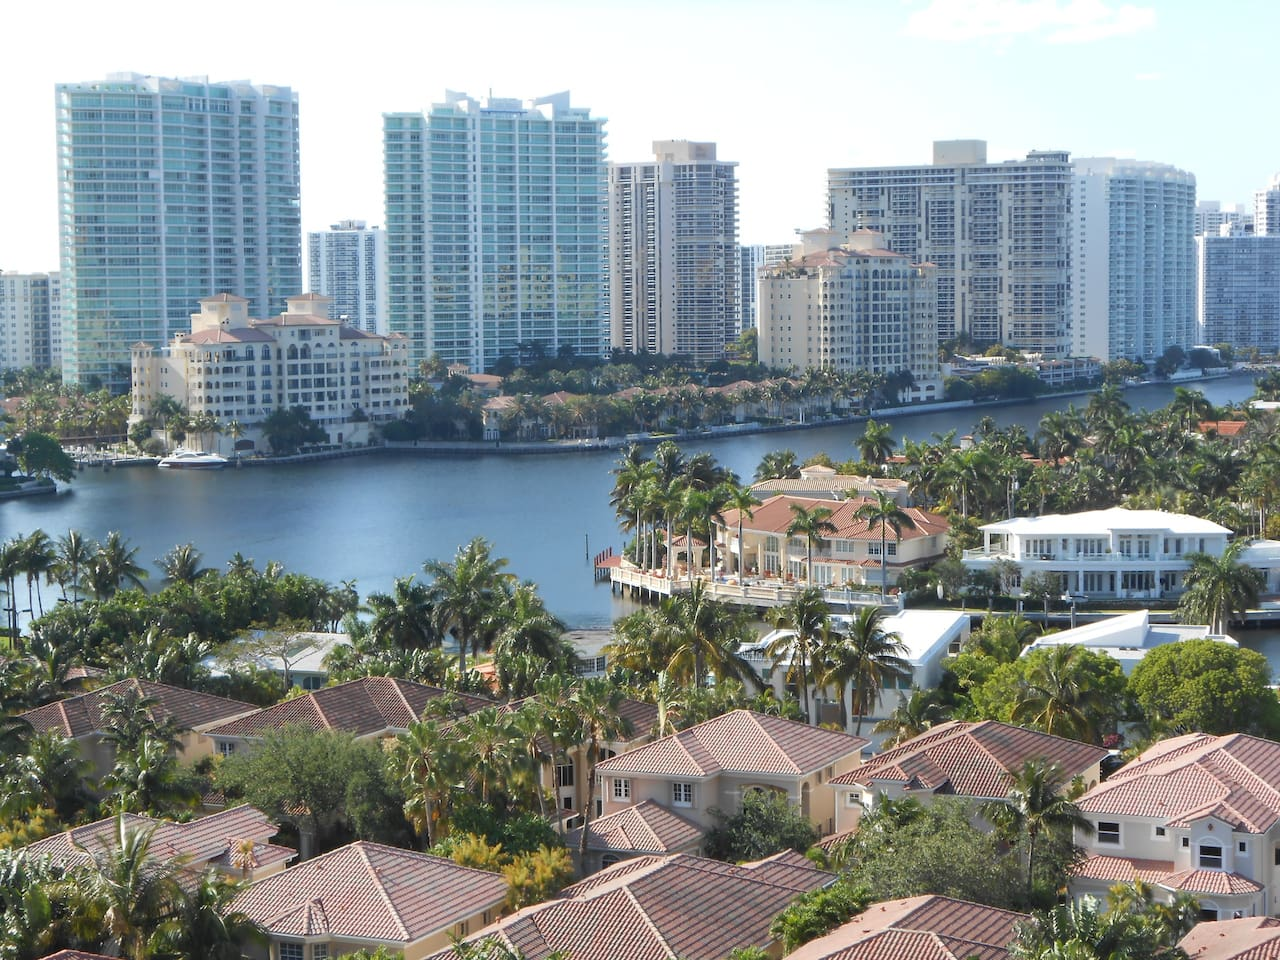 Vista de la intracoastal / Intracoastal View